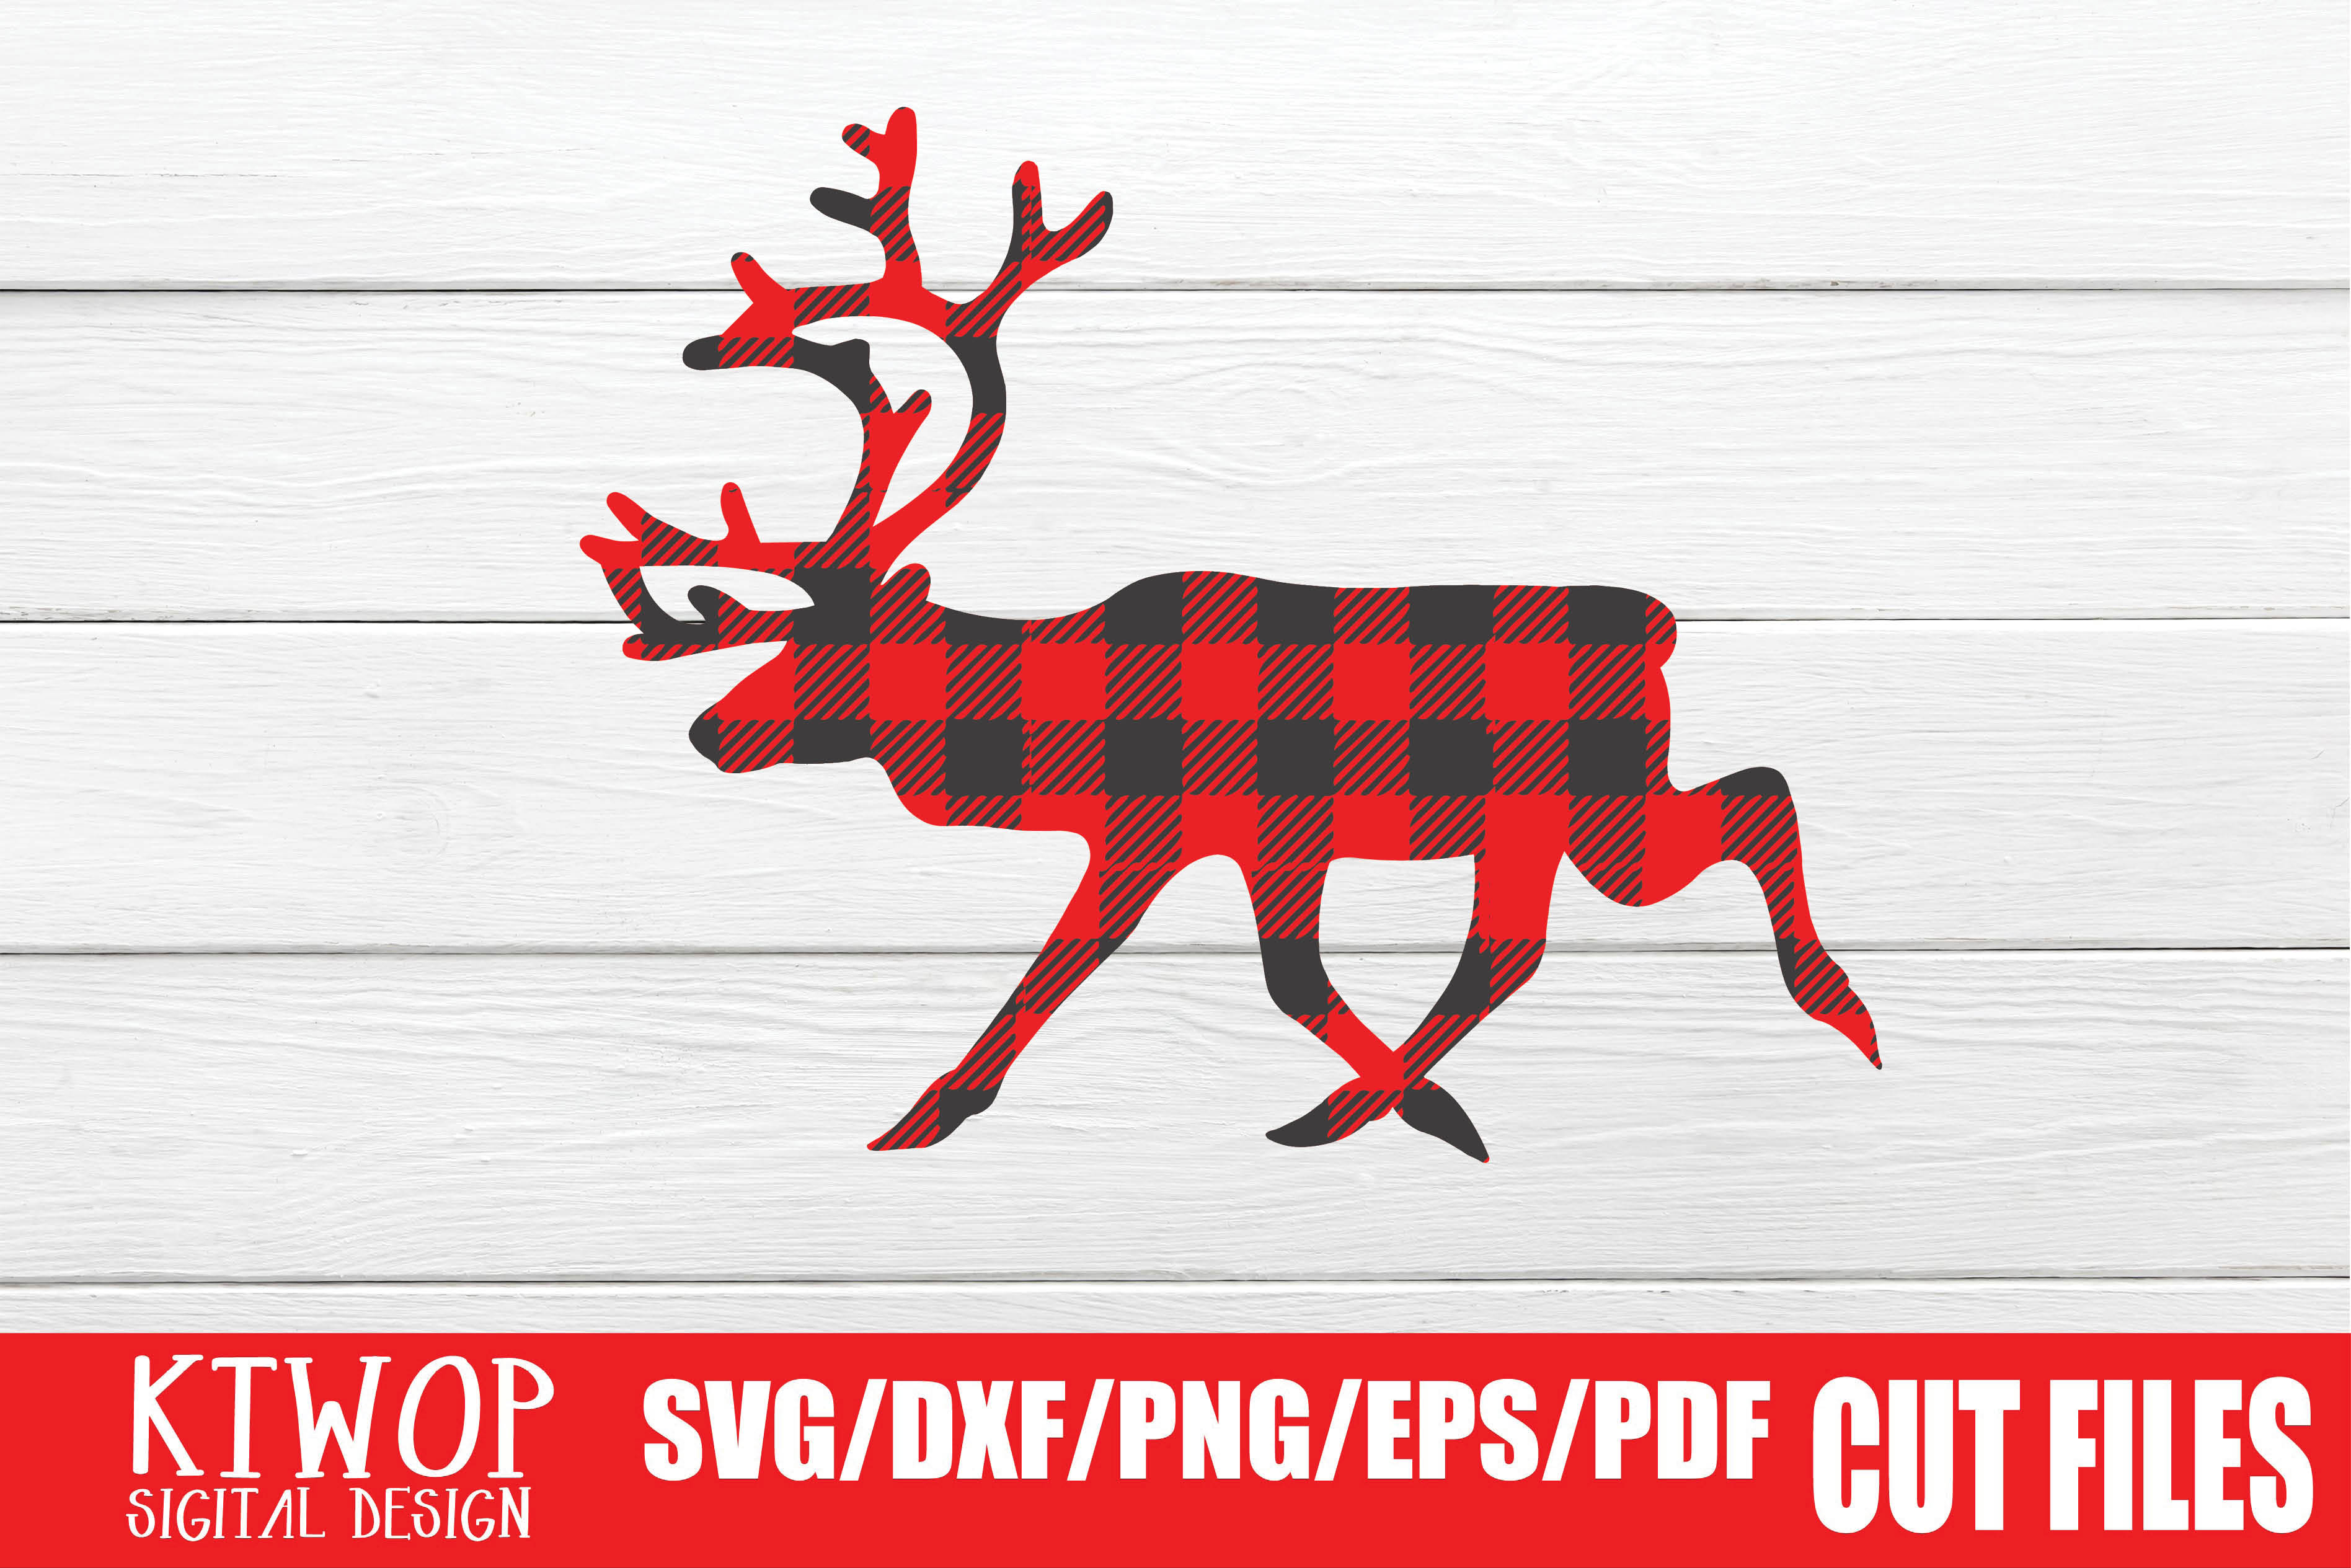 Christmas Svg Deer Free Svg Cut Files Create Your Diy Projects Using Your Cricut Explore Silhouette And More The Free Cut Files Include Svg Dxf Eps And Png Files